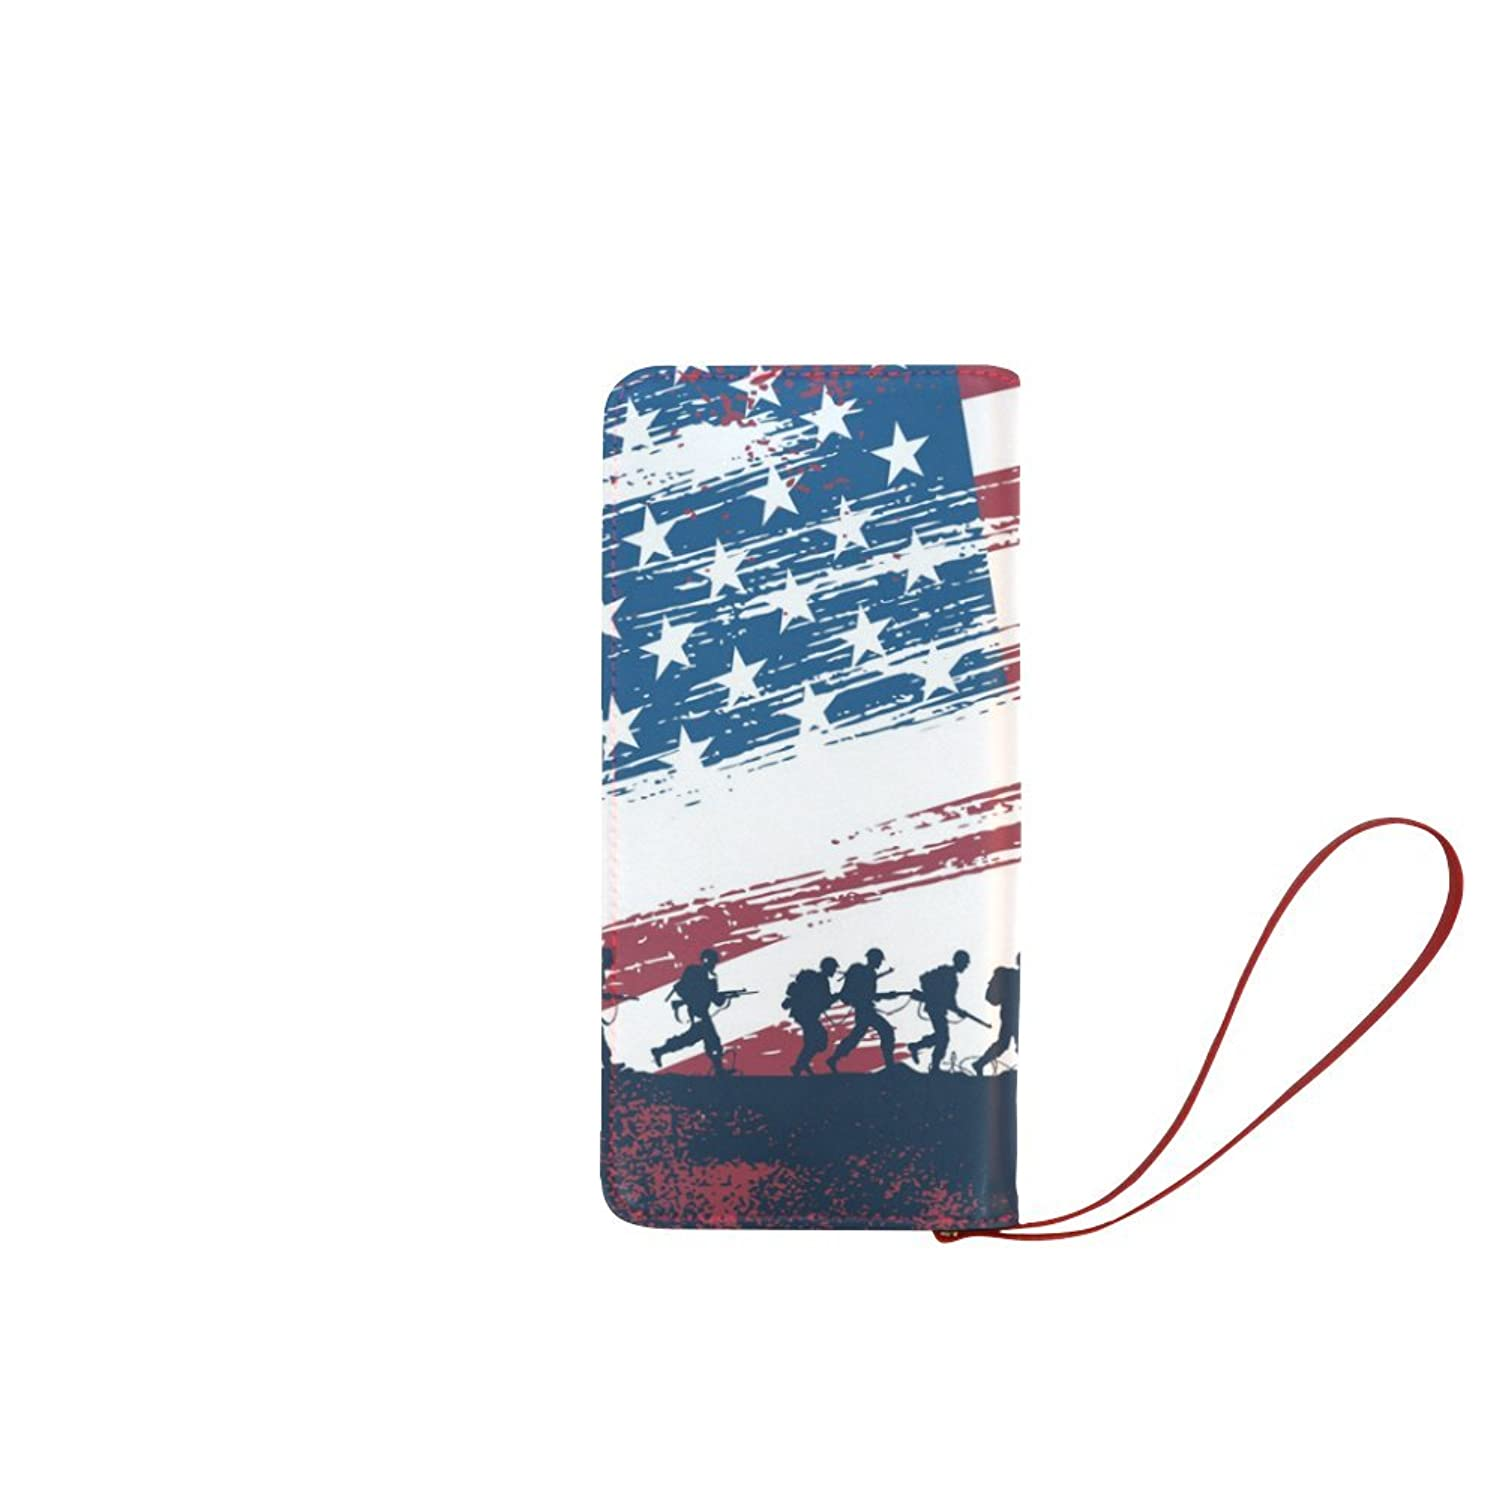 meincare Women's Soldiers with American Flag Clutch Purse